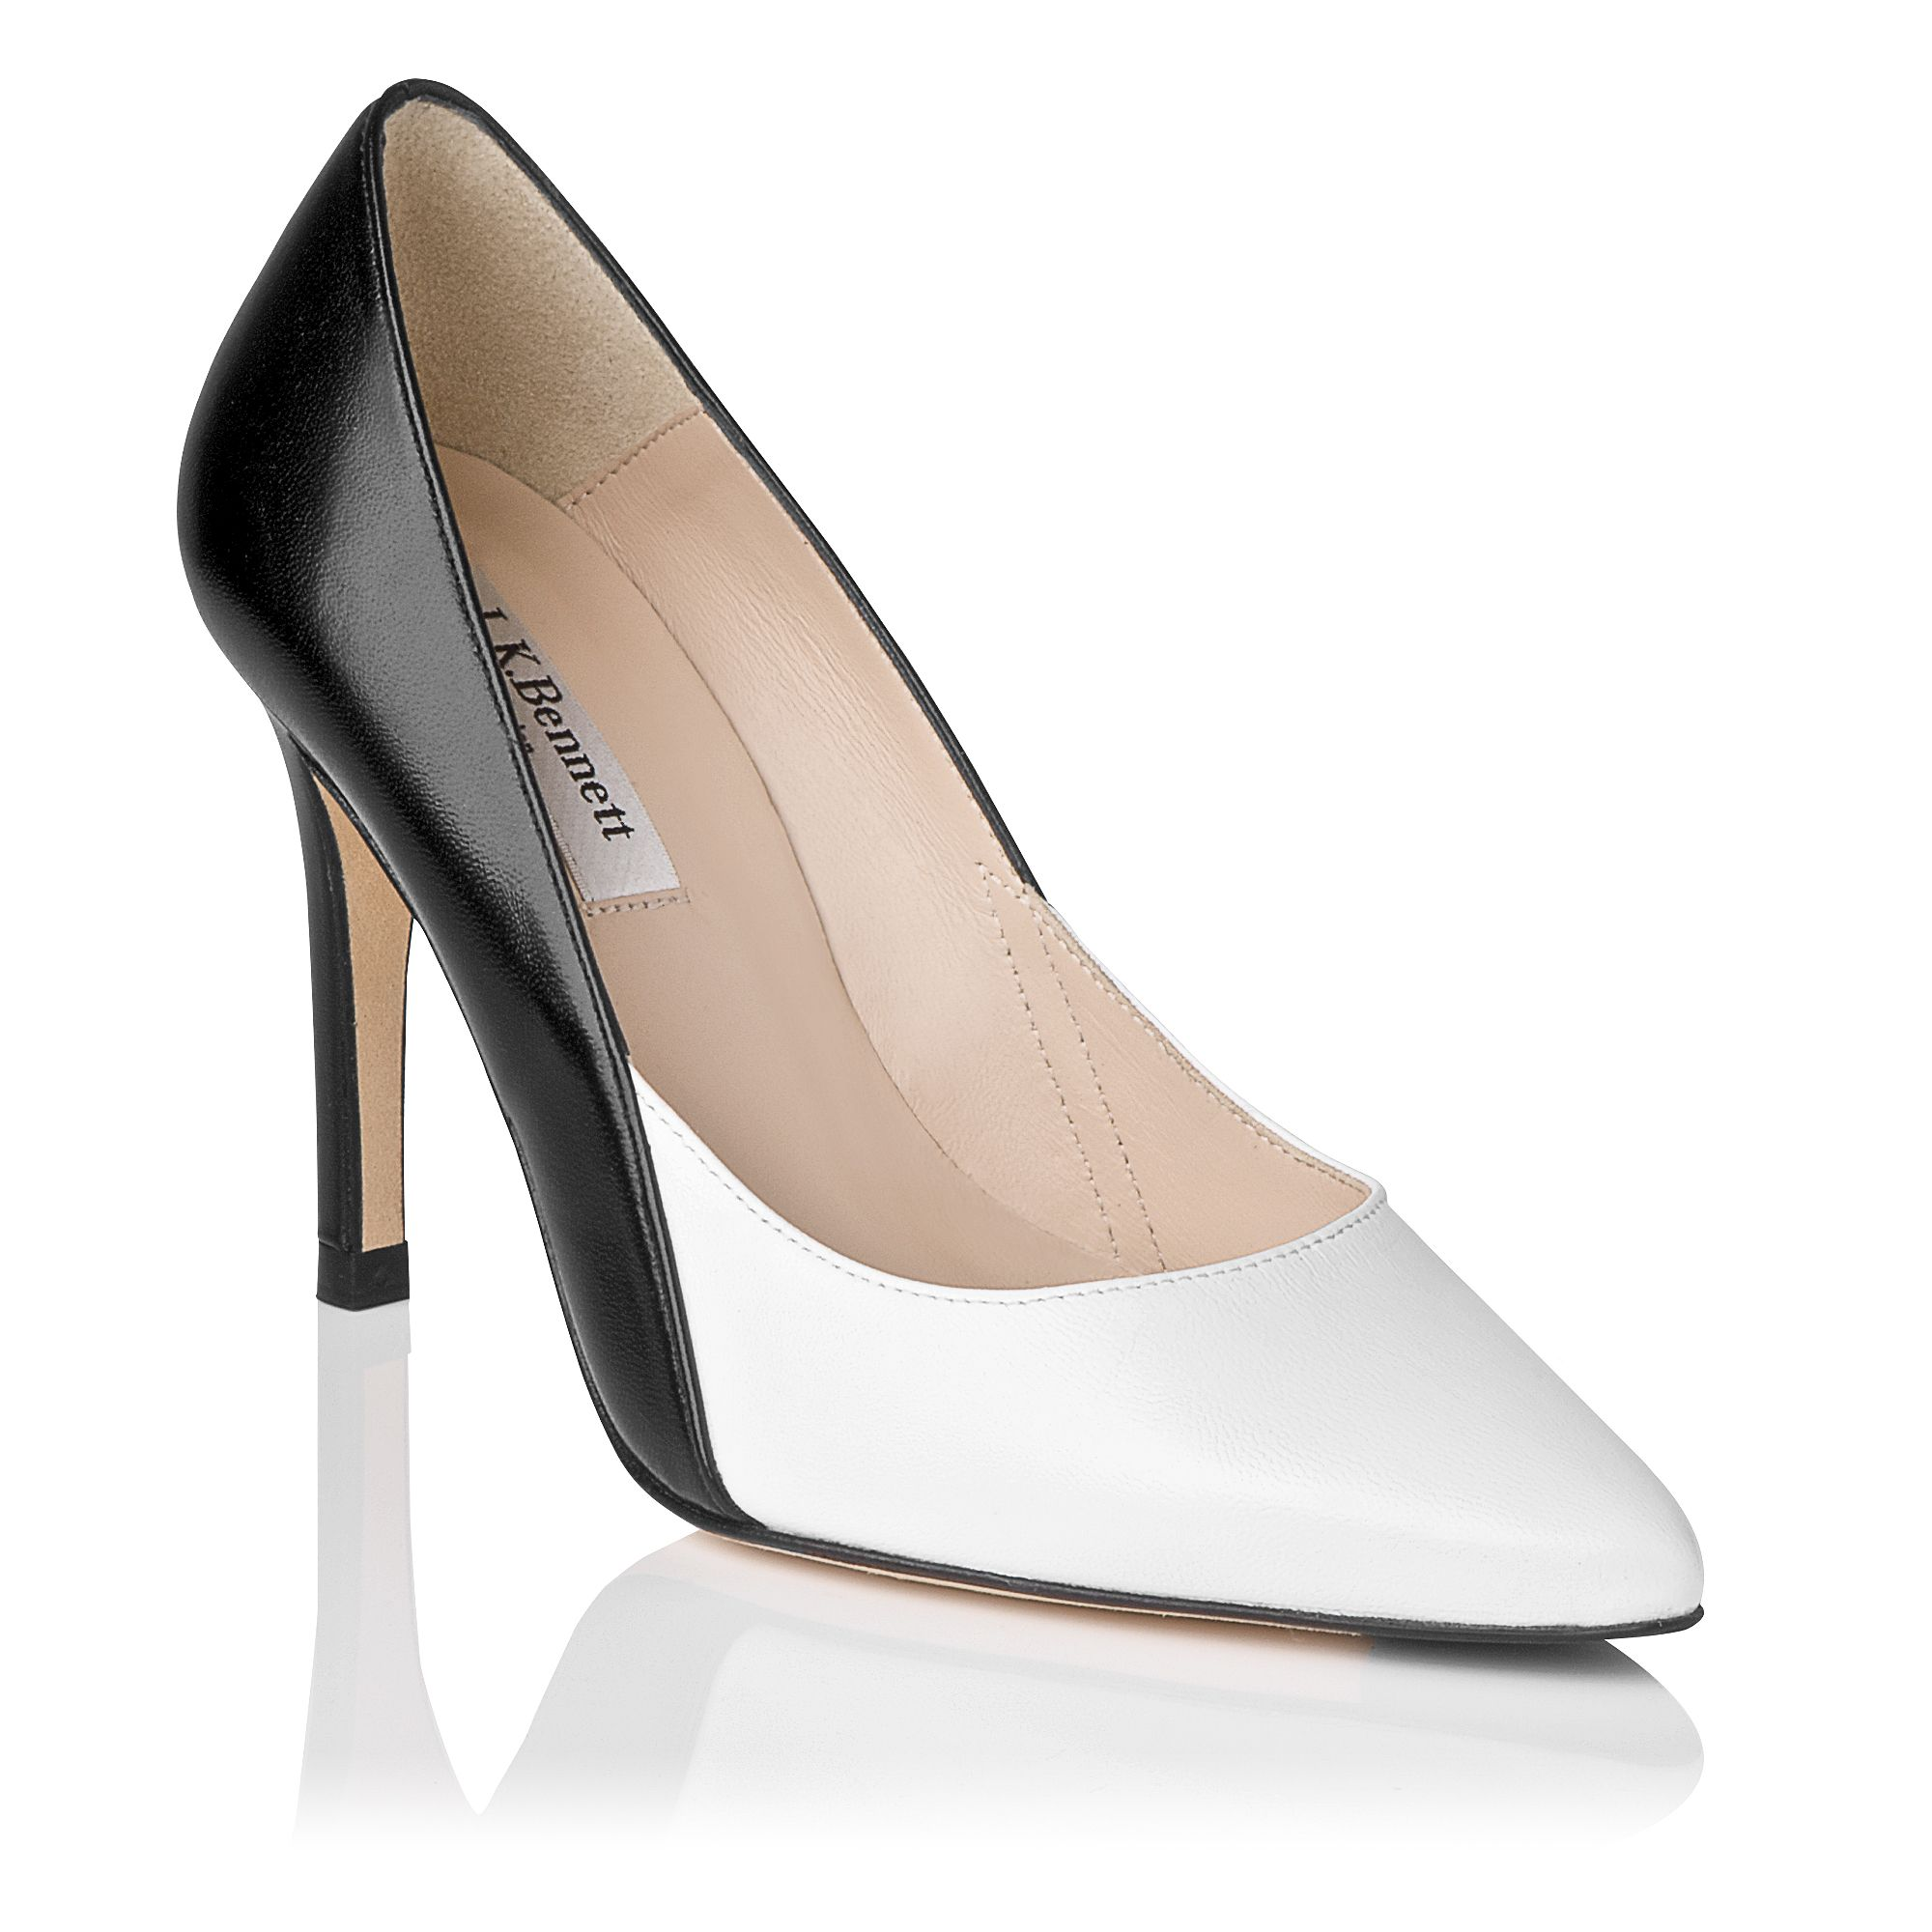 Jennie leather stiletto point court shoes